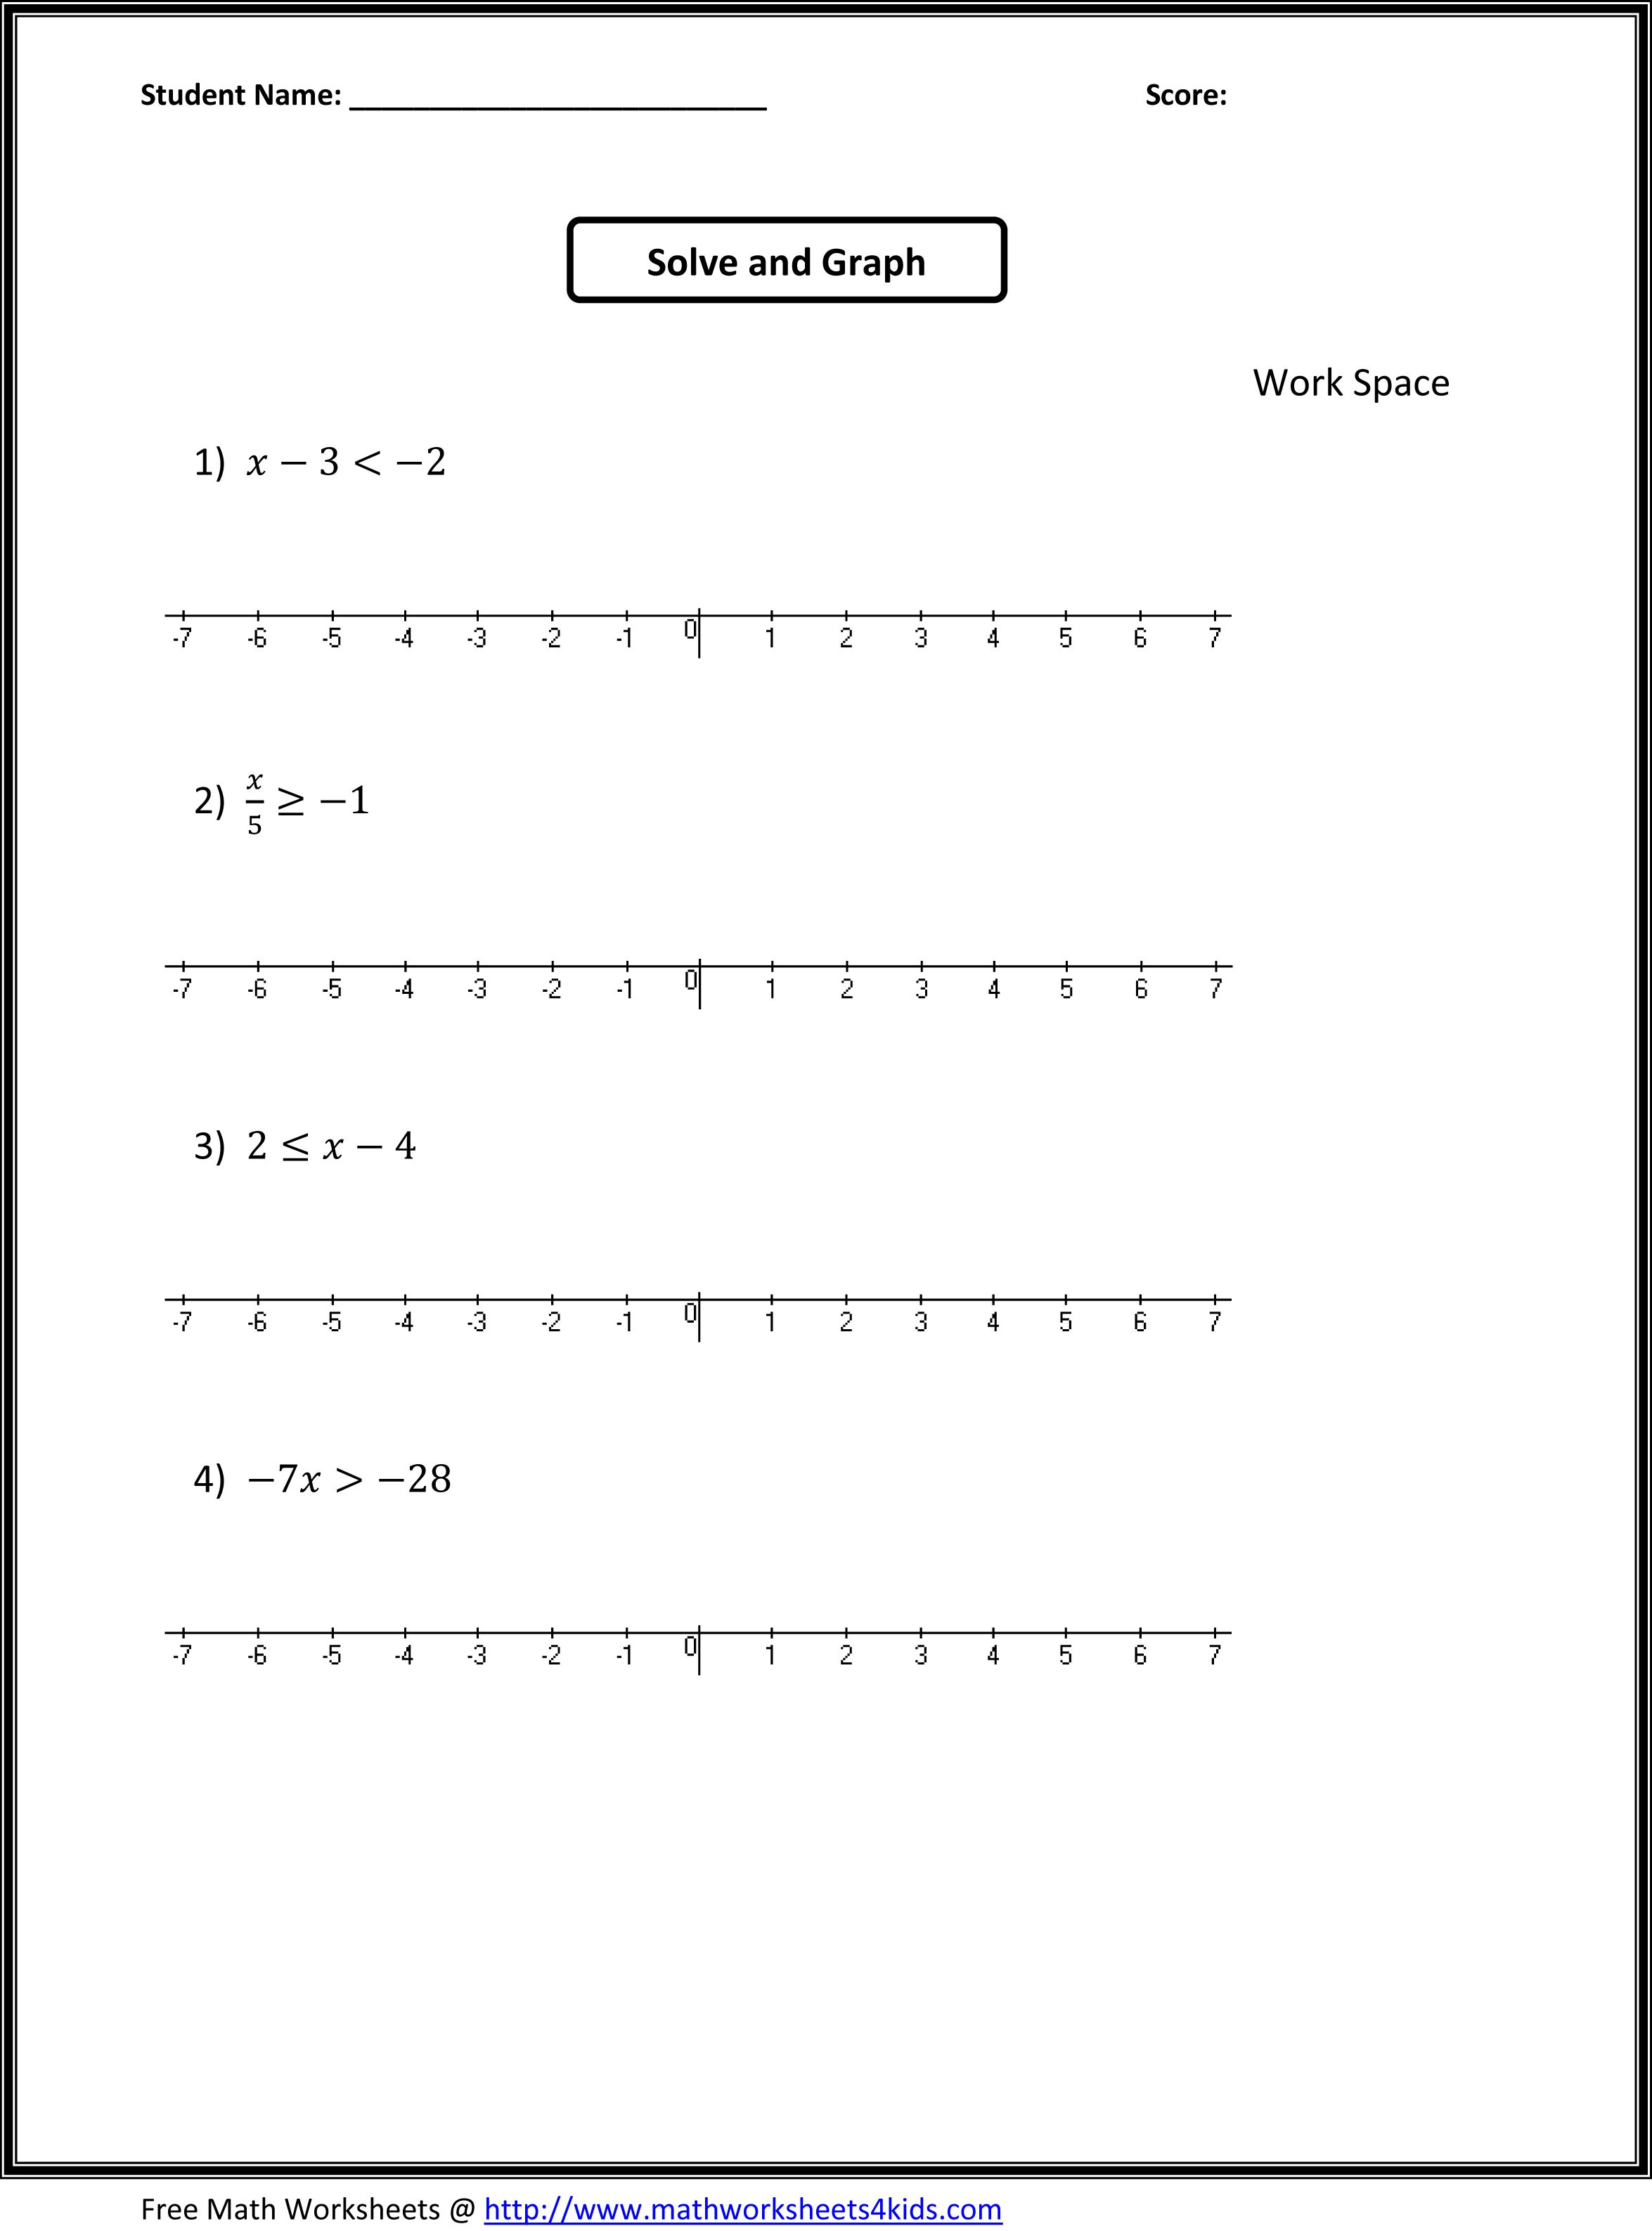 Printables 7th Grade Math Worksheets Free 7th grade math worksheets value absolute algebra worksheets